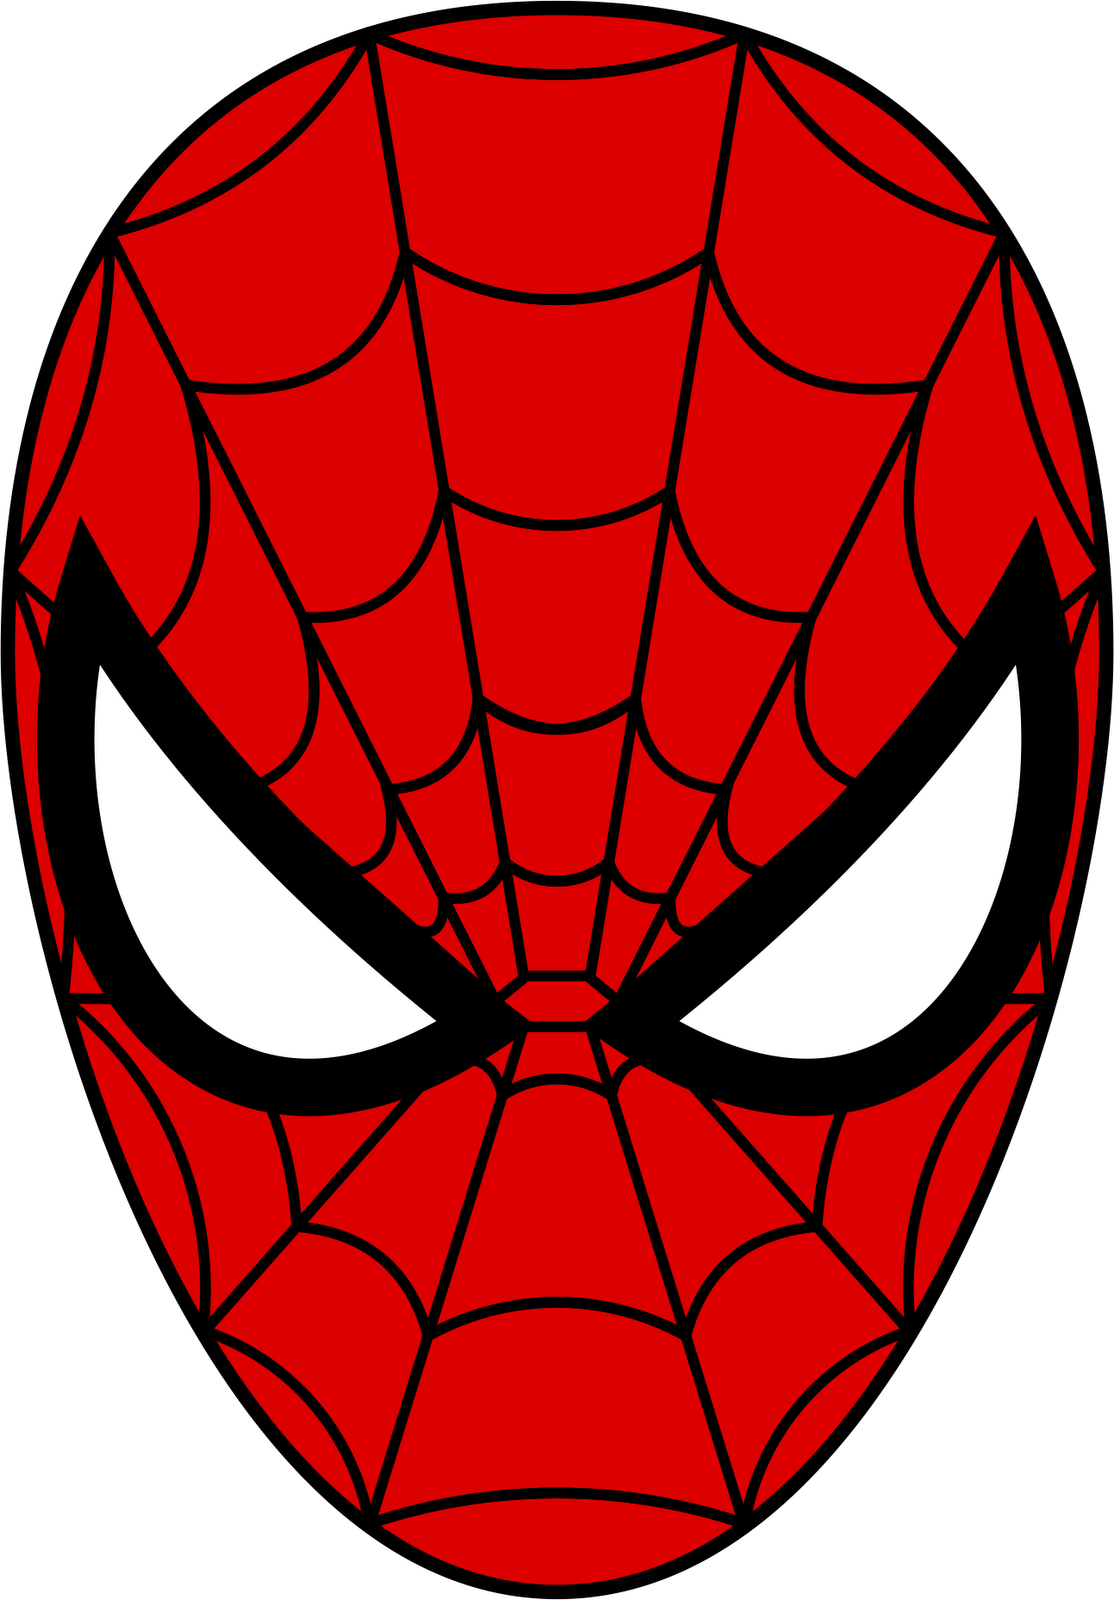 spider man mask from cardboard templates nextinvitation templates rh pinterest com Spider-Man Logo Iron Man Face Clip Art